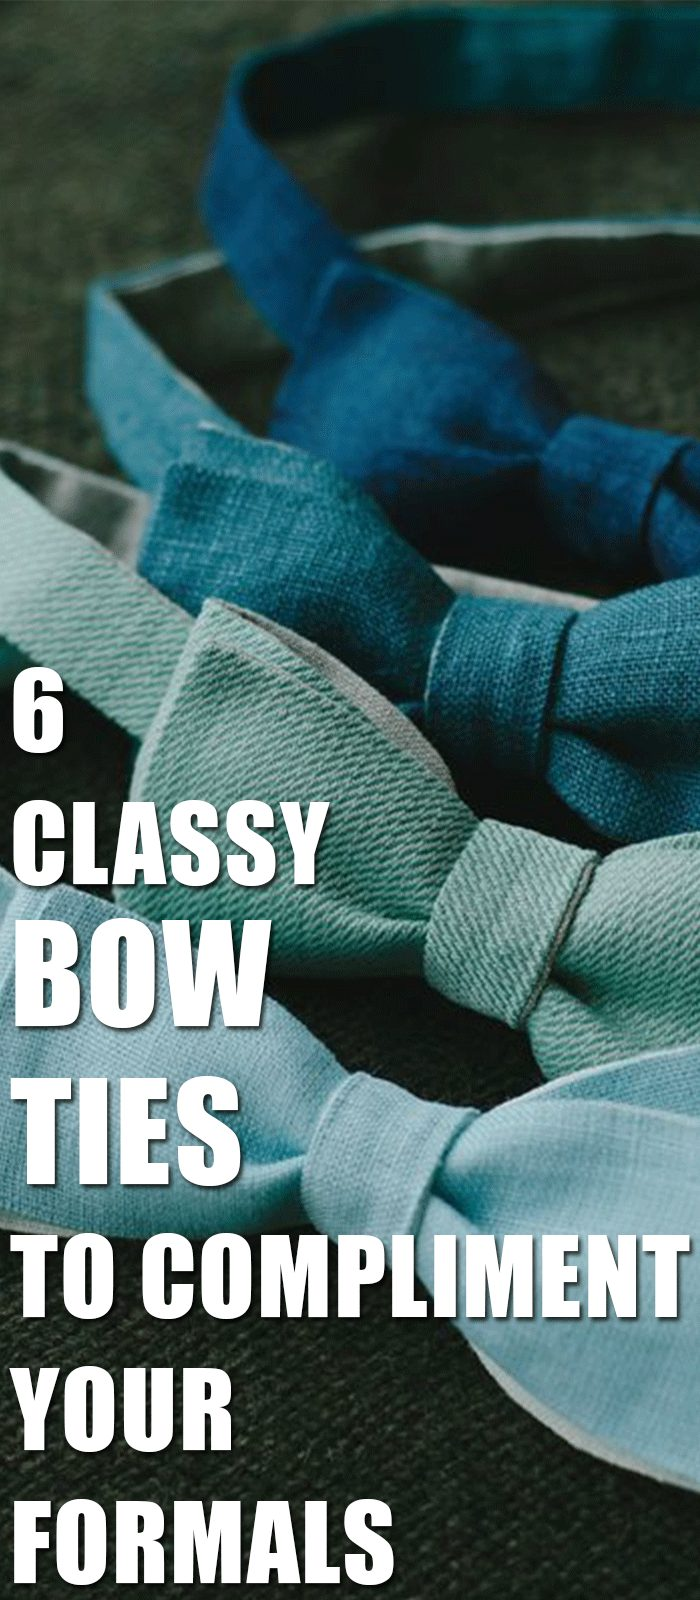 Bow Ties To Compliment Your Formals